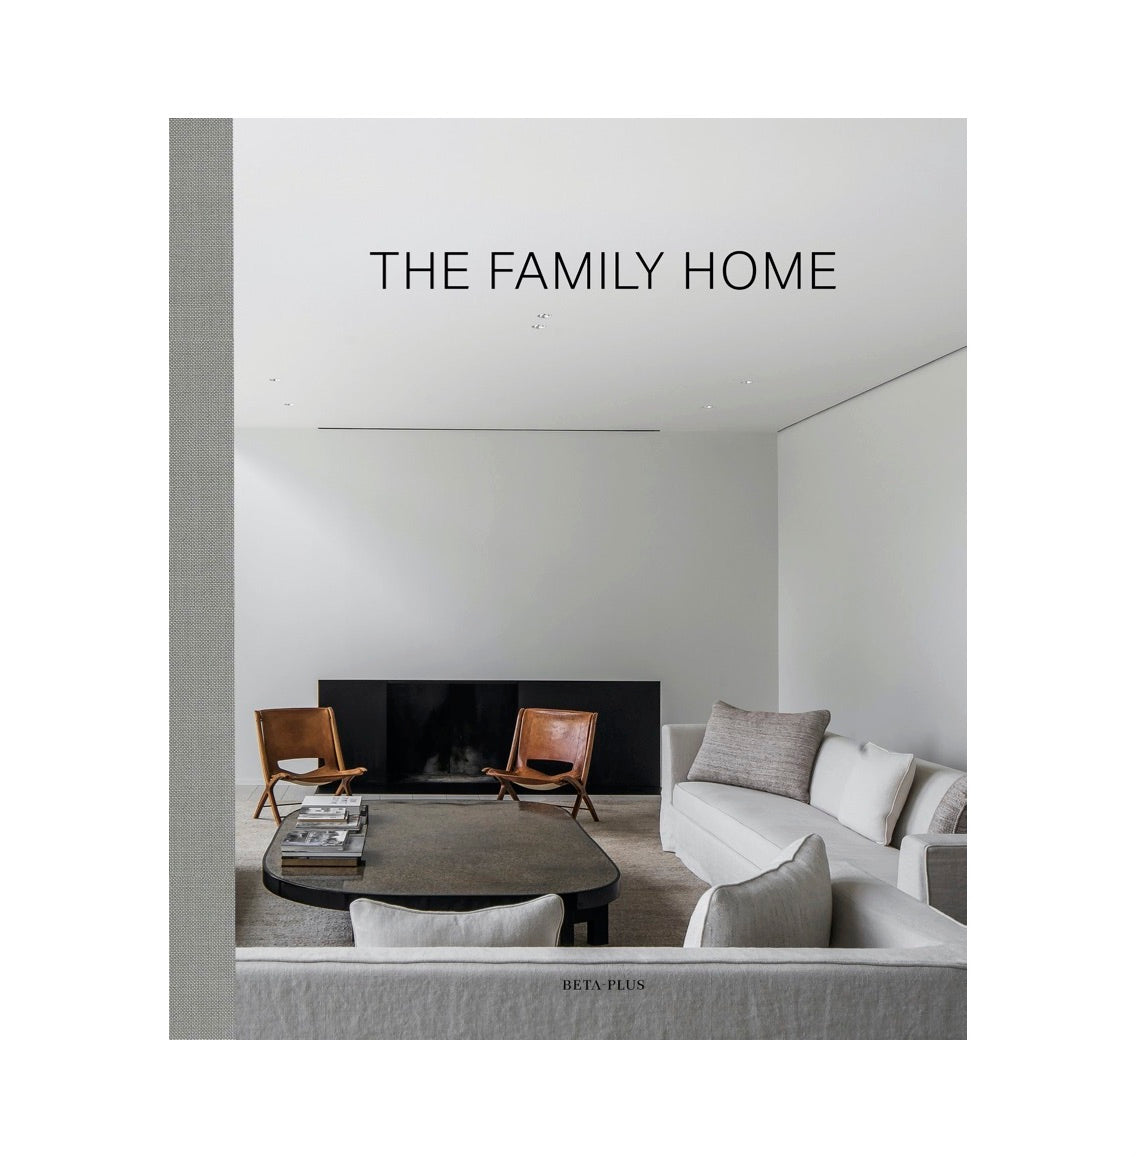 The Family Home